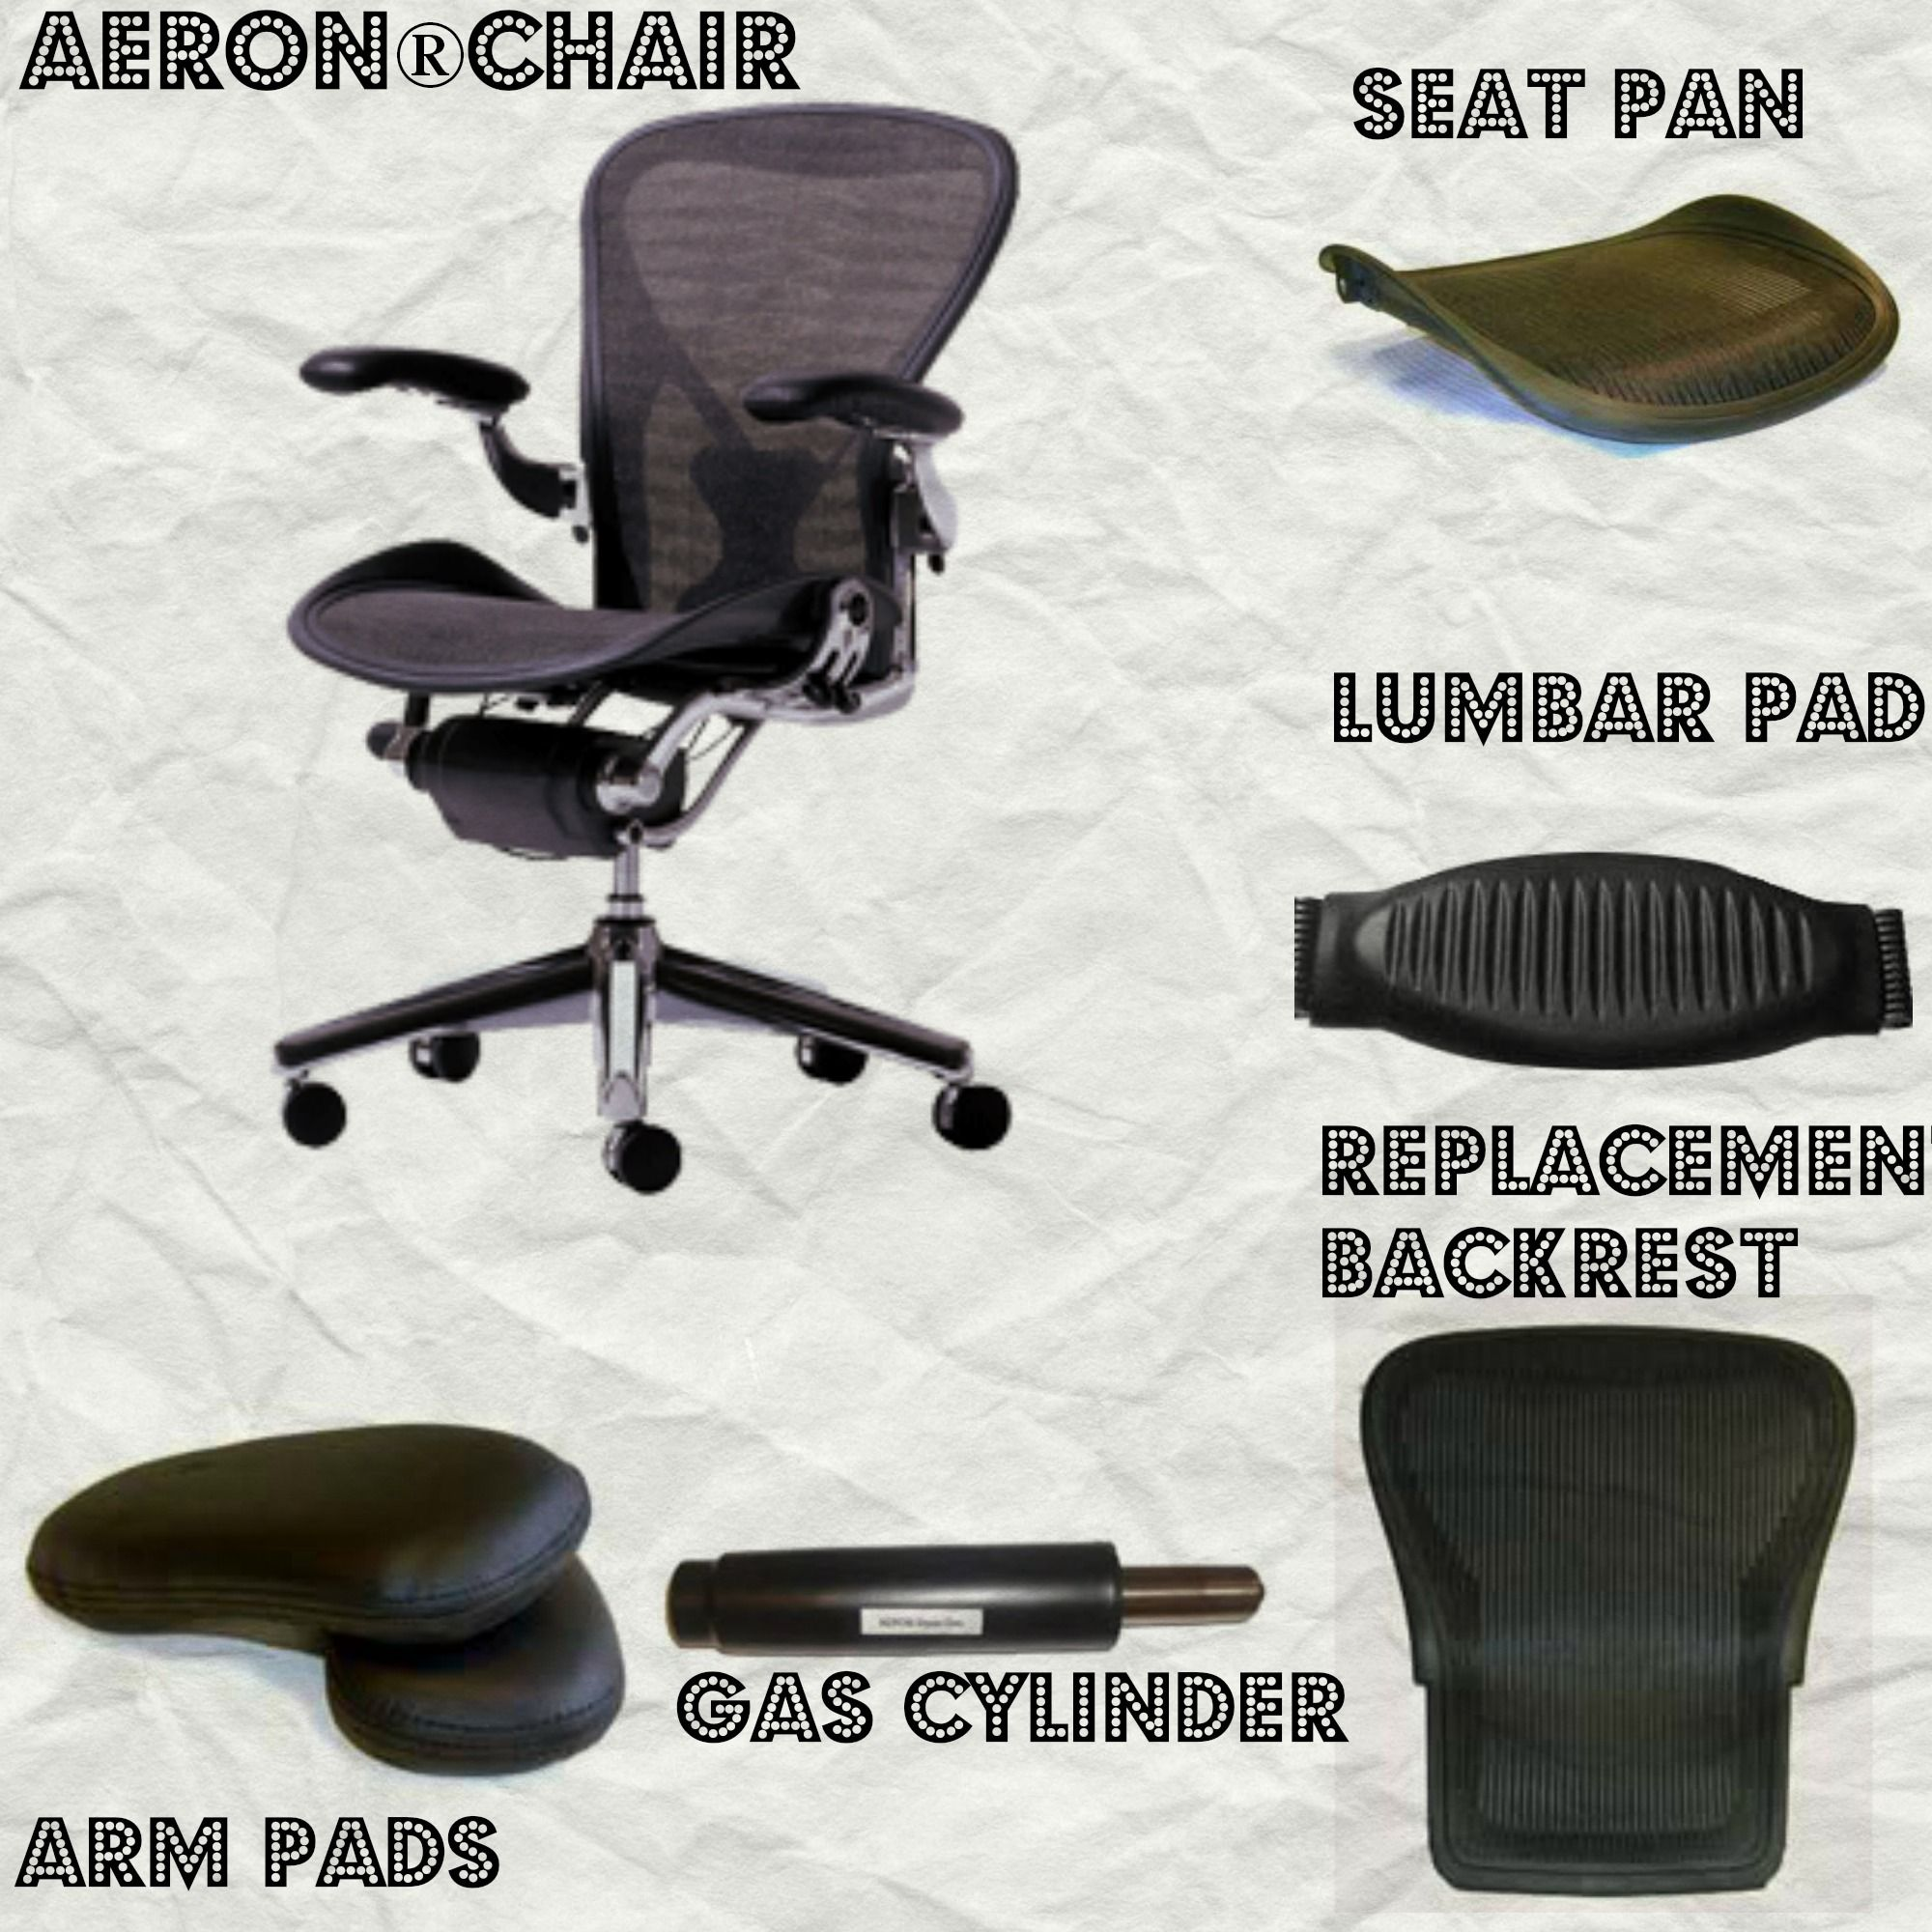 In Search Of Herman Miller Aeron Chair Parts Look No Further You Can Get Them Right Here Right Now Comfy Office Chair Chair Dining Room Chair Cushions